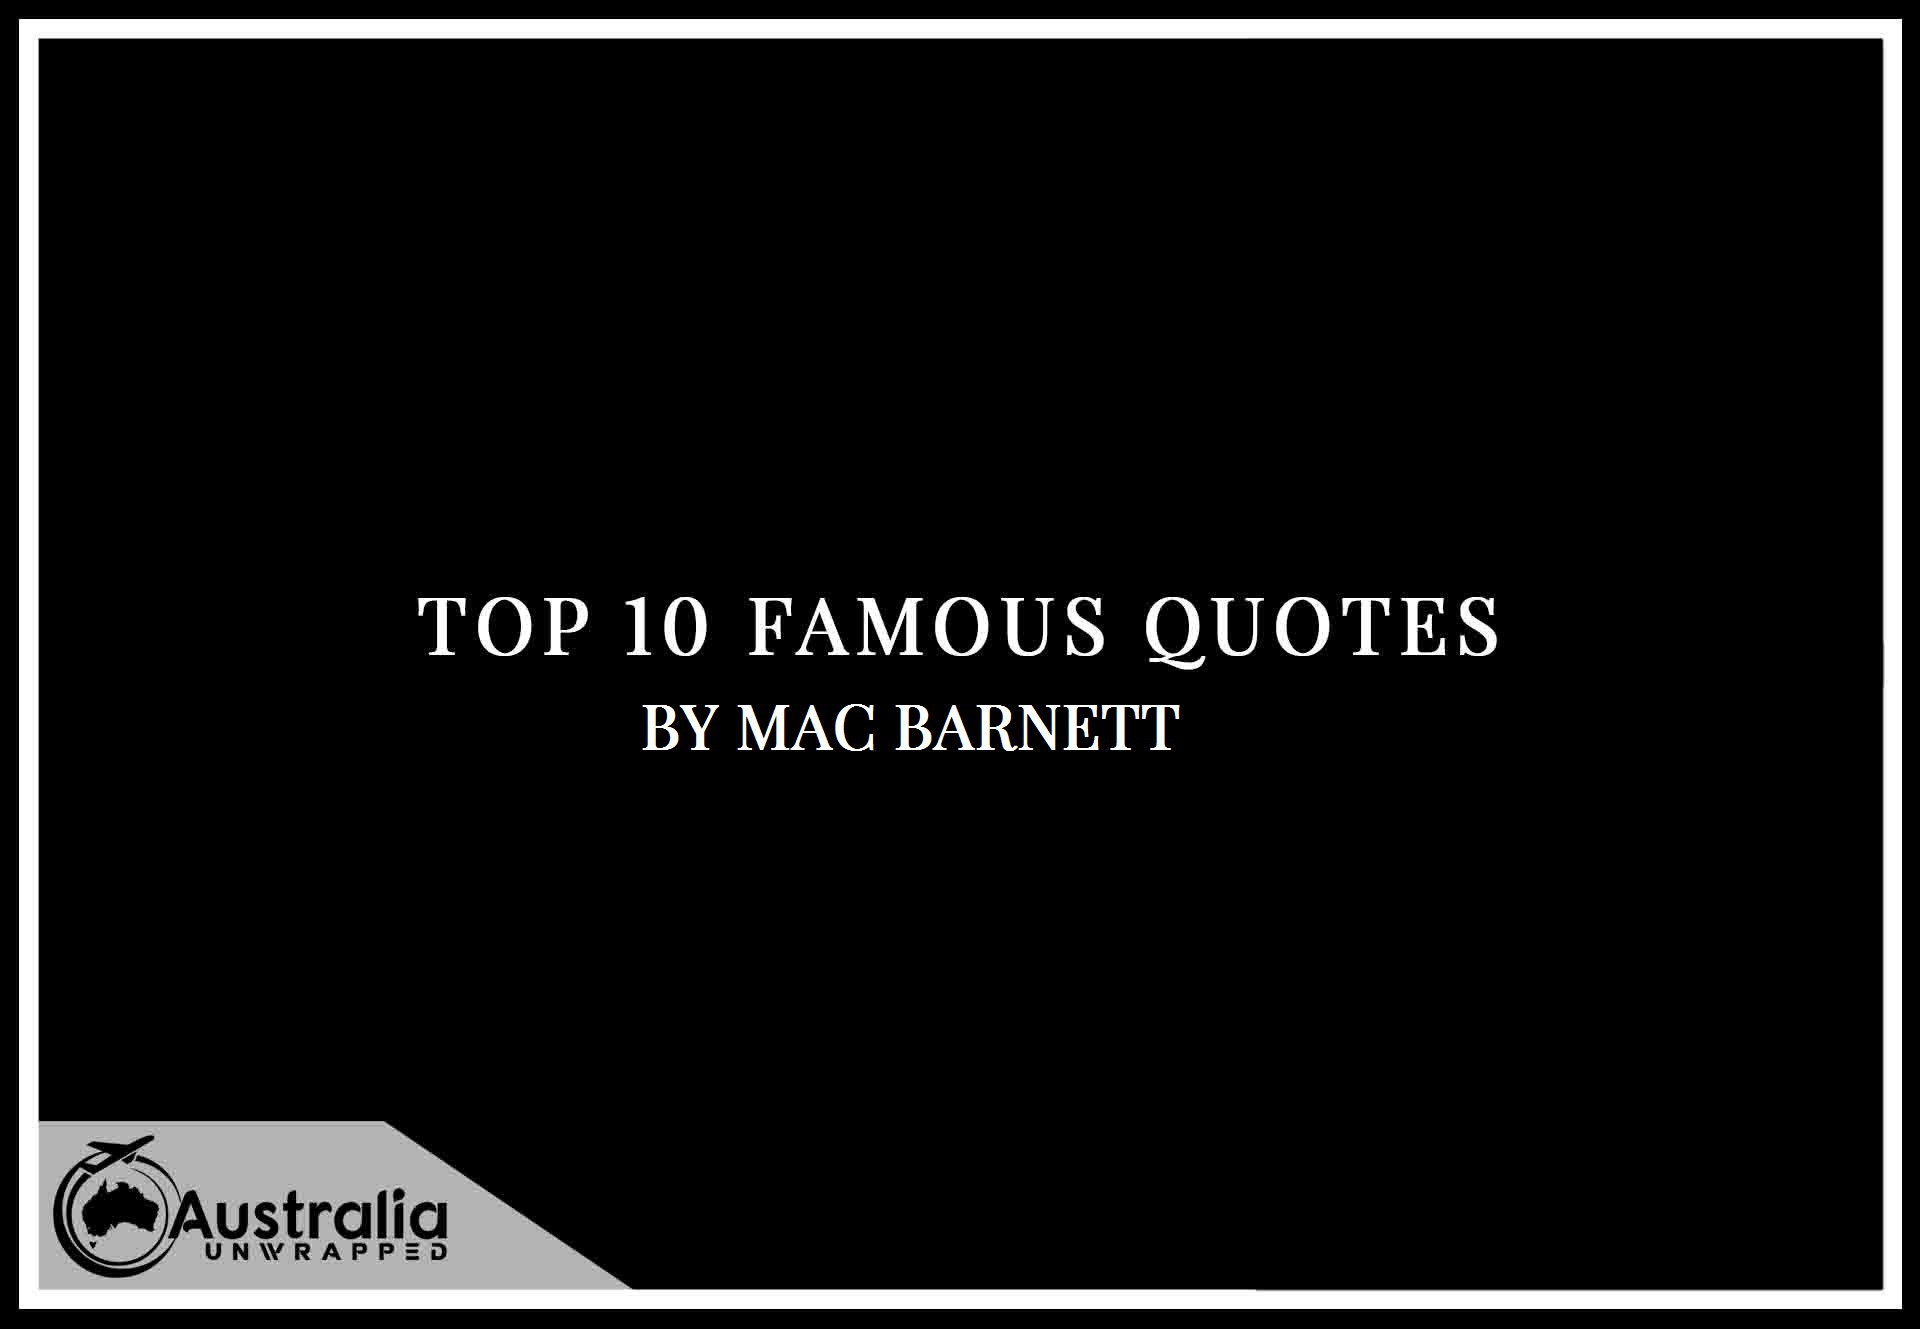 Mac Barnett's Top 10 Popular and Famous Quotes